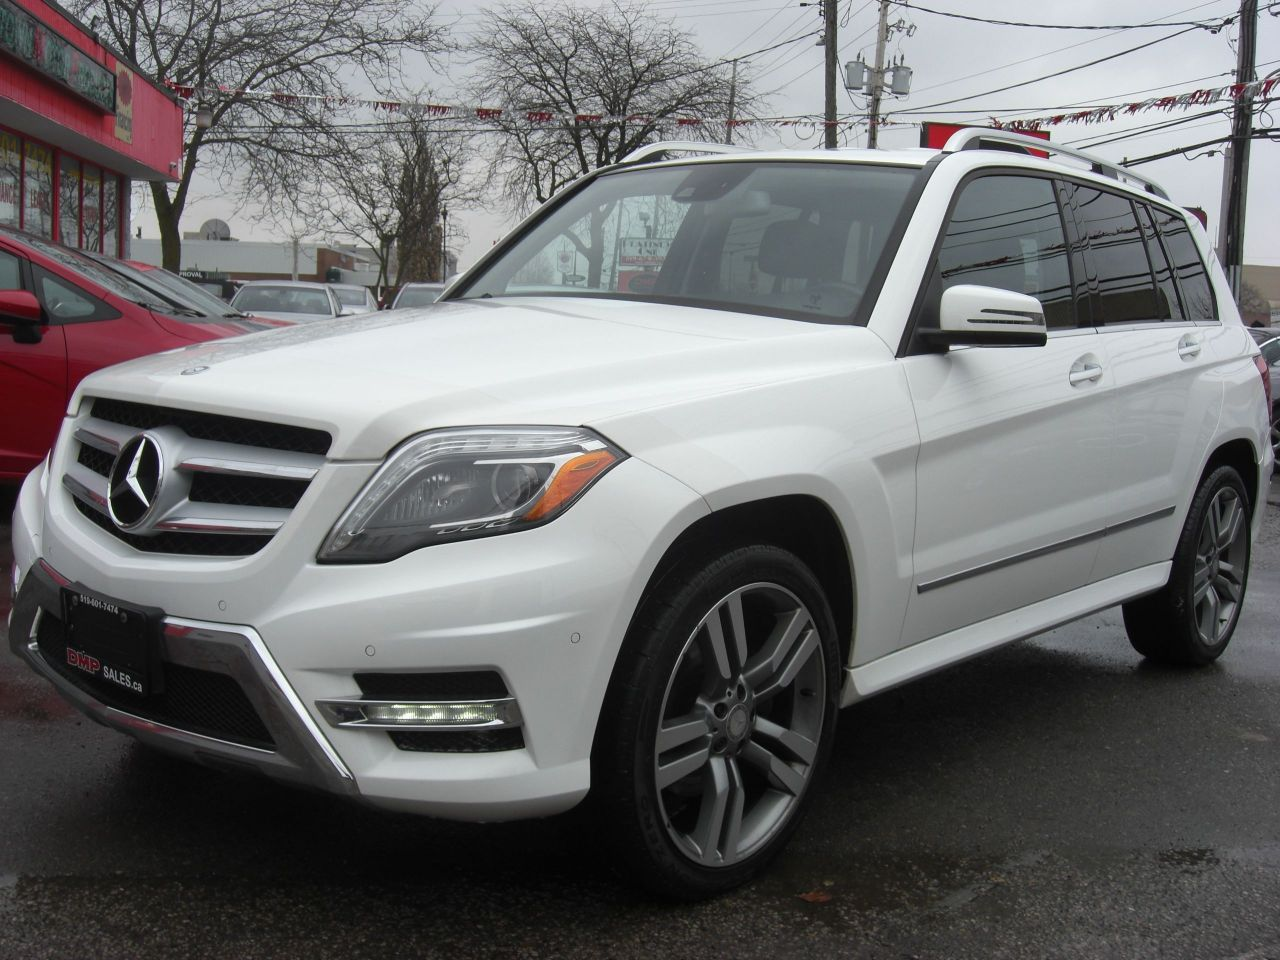 class glk c used stock htm mercedes for benz bluetec